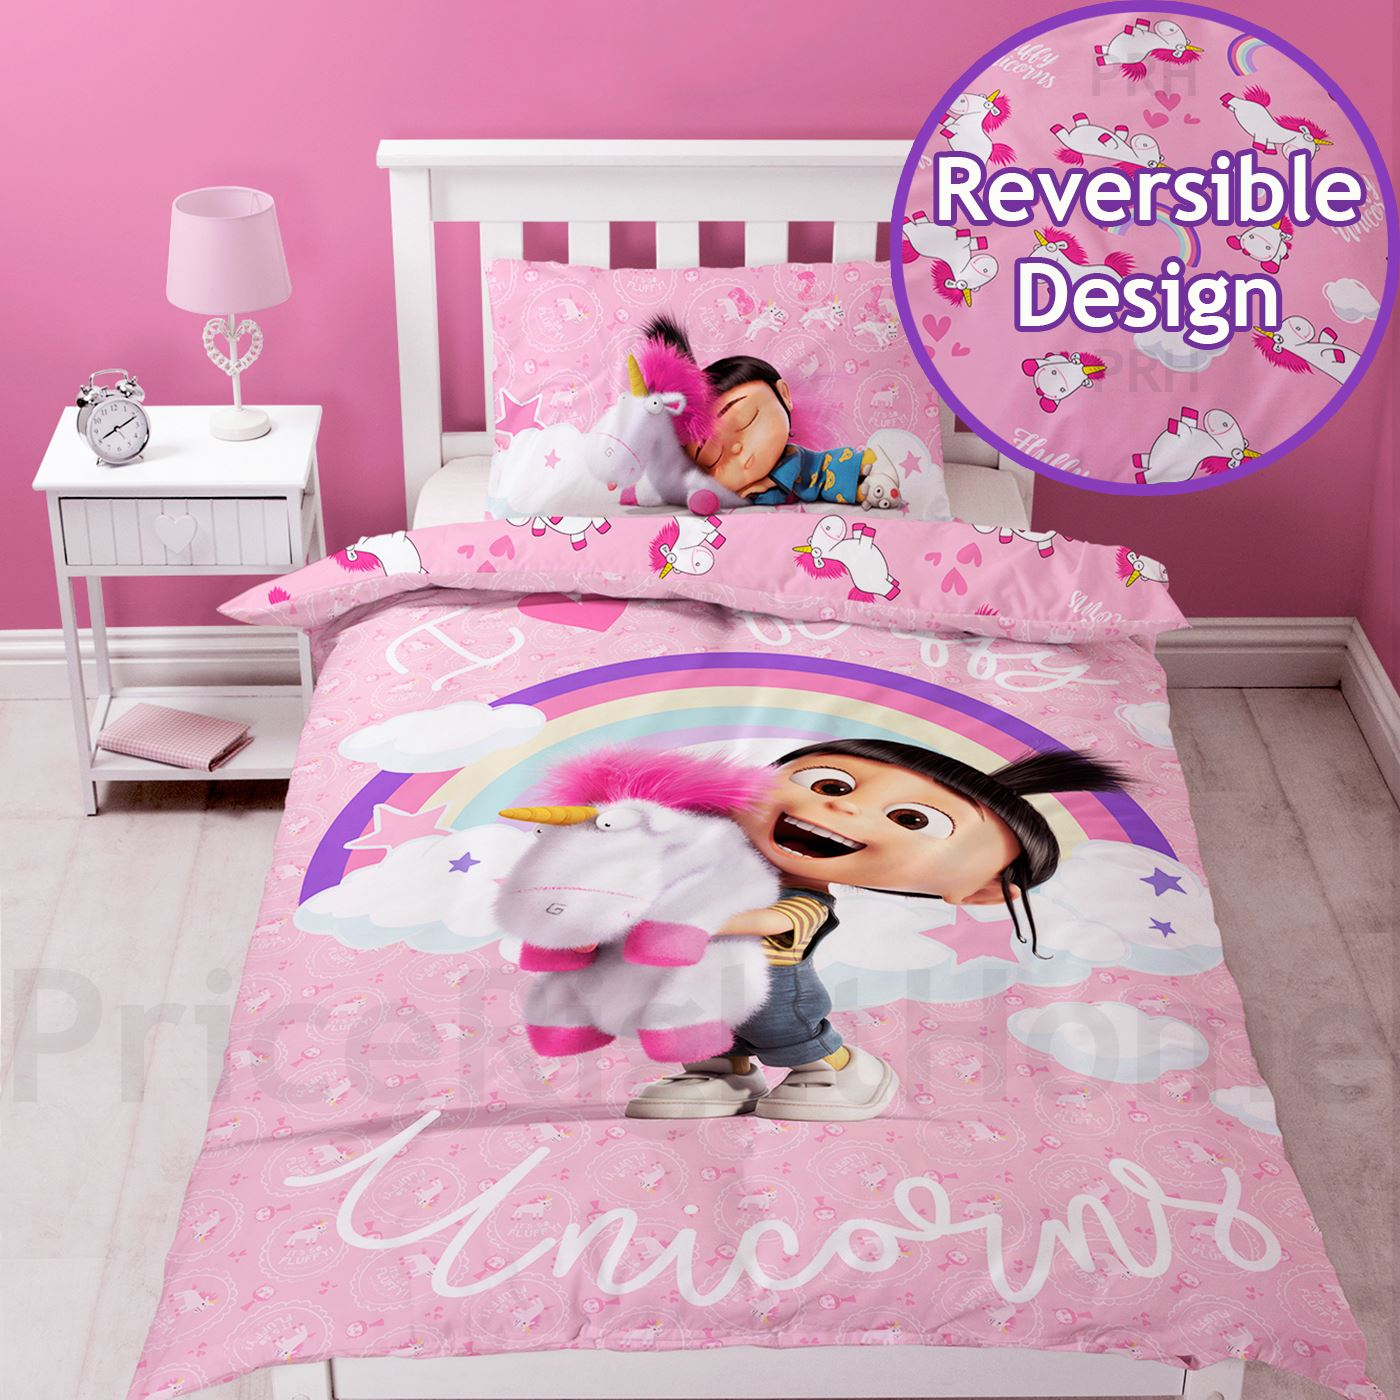 Despicable Me Daydream Fluffy Unicorn Single Duvet Cover